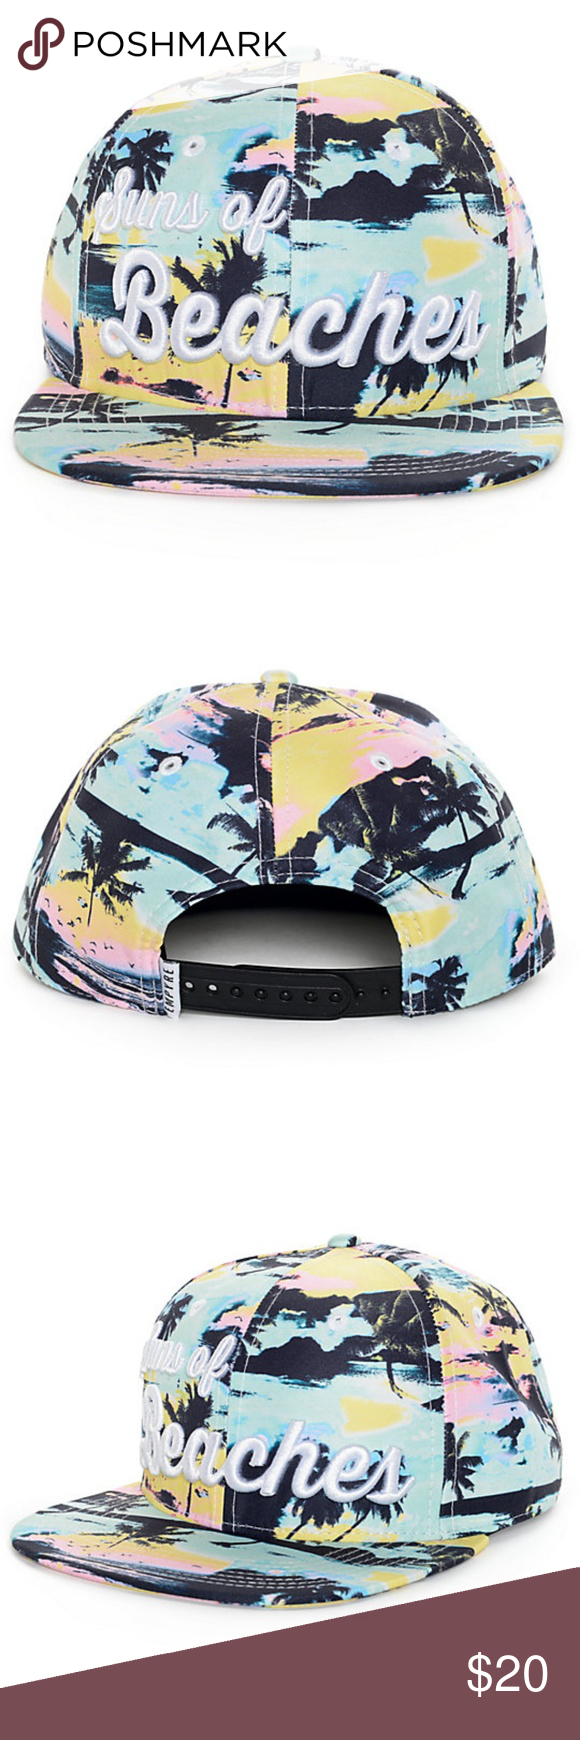 bd538772323 NWOT Empyre Suns of Beaches Snapback Hat Suns of Beaches Snapback by Empyre  featuring colors teal